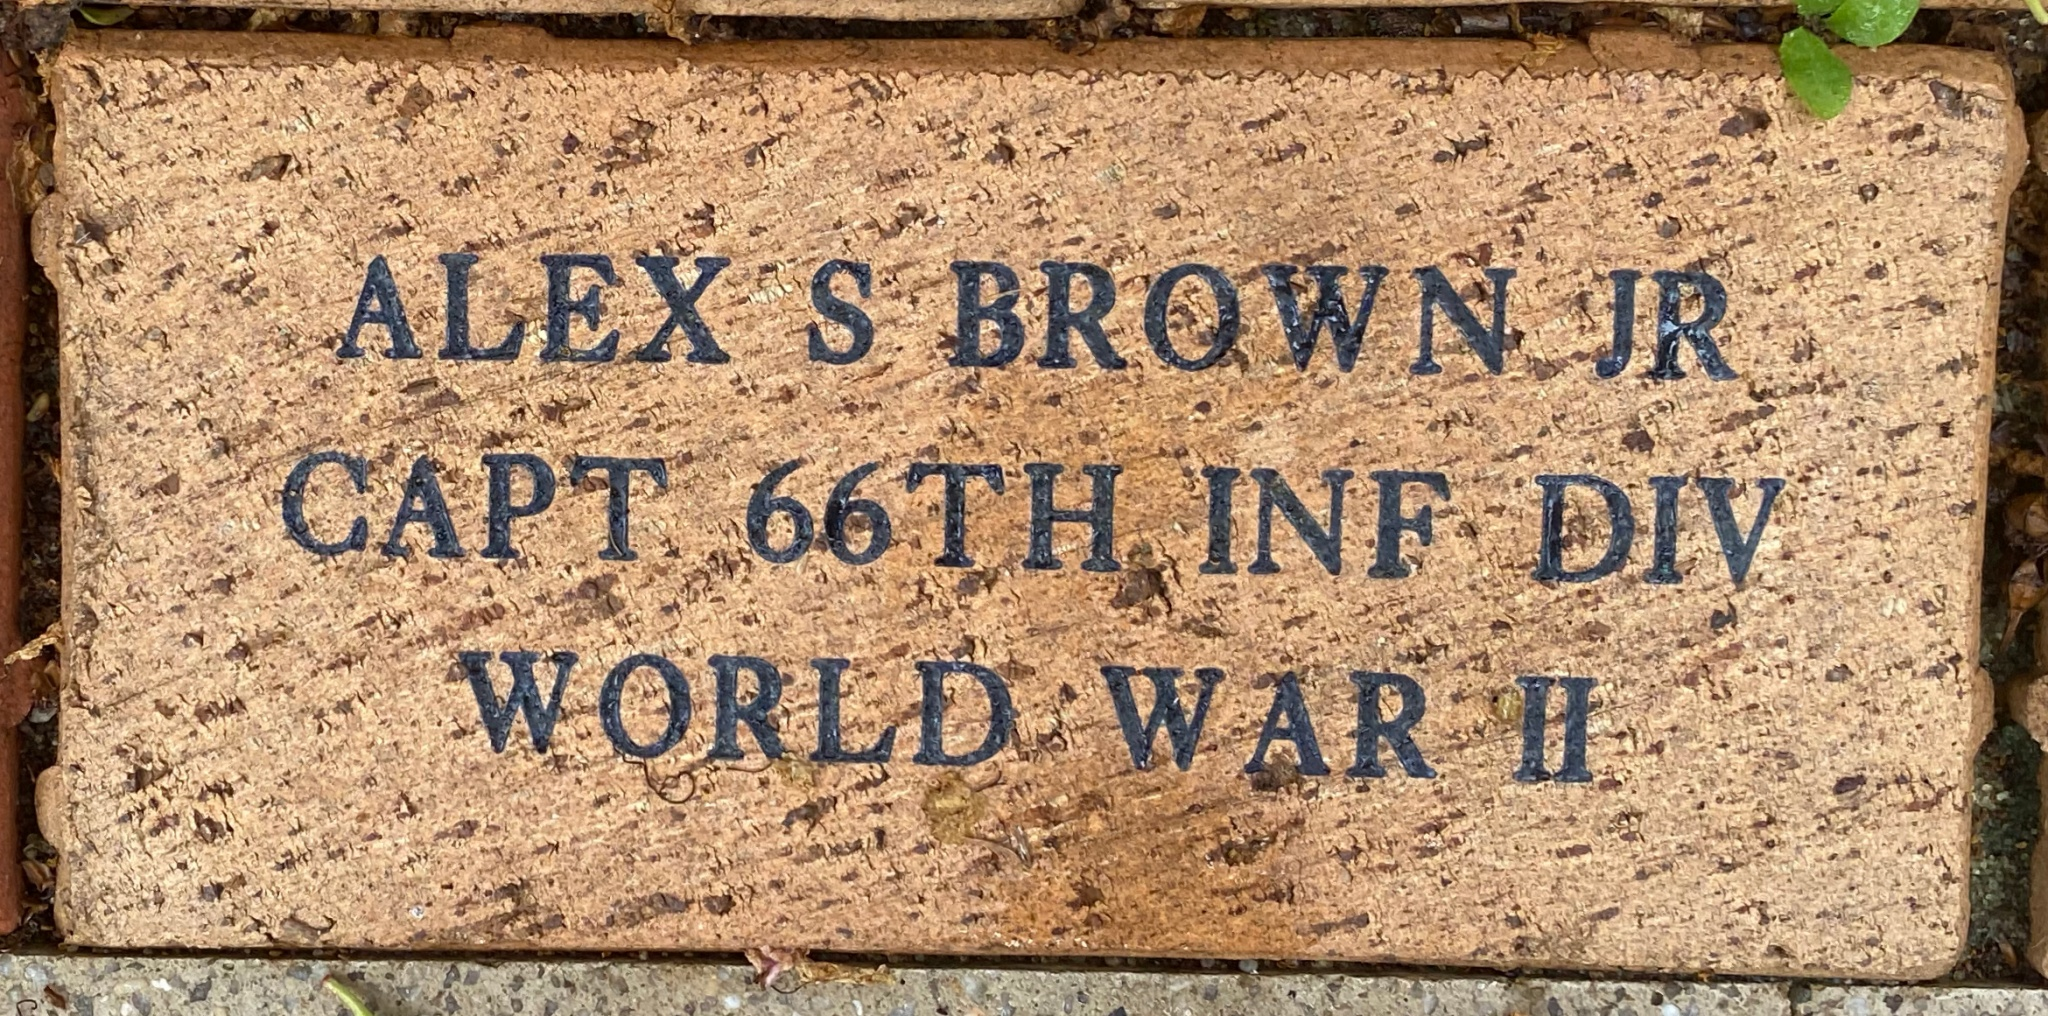 ALEX S BROWN JR CAPT 66TH INF DIV WORLD WAR II